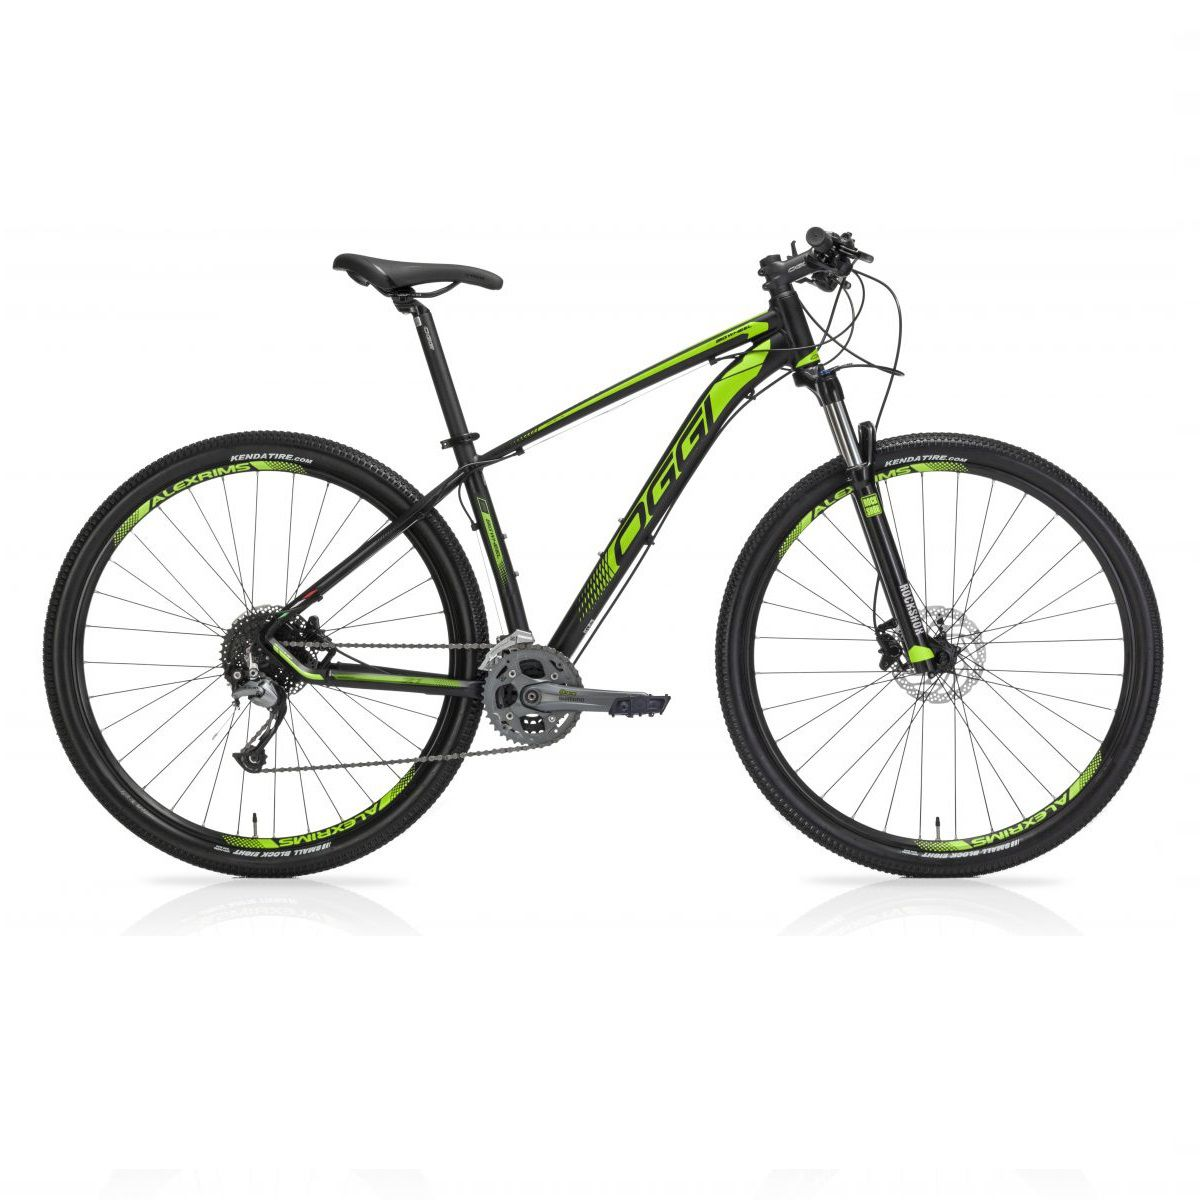 BICICLETA ARO 29 BIG WHEEL 7.1 18V OGGI